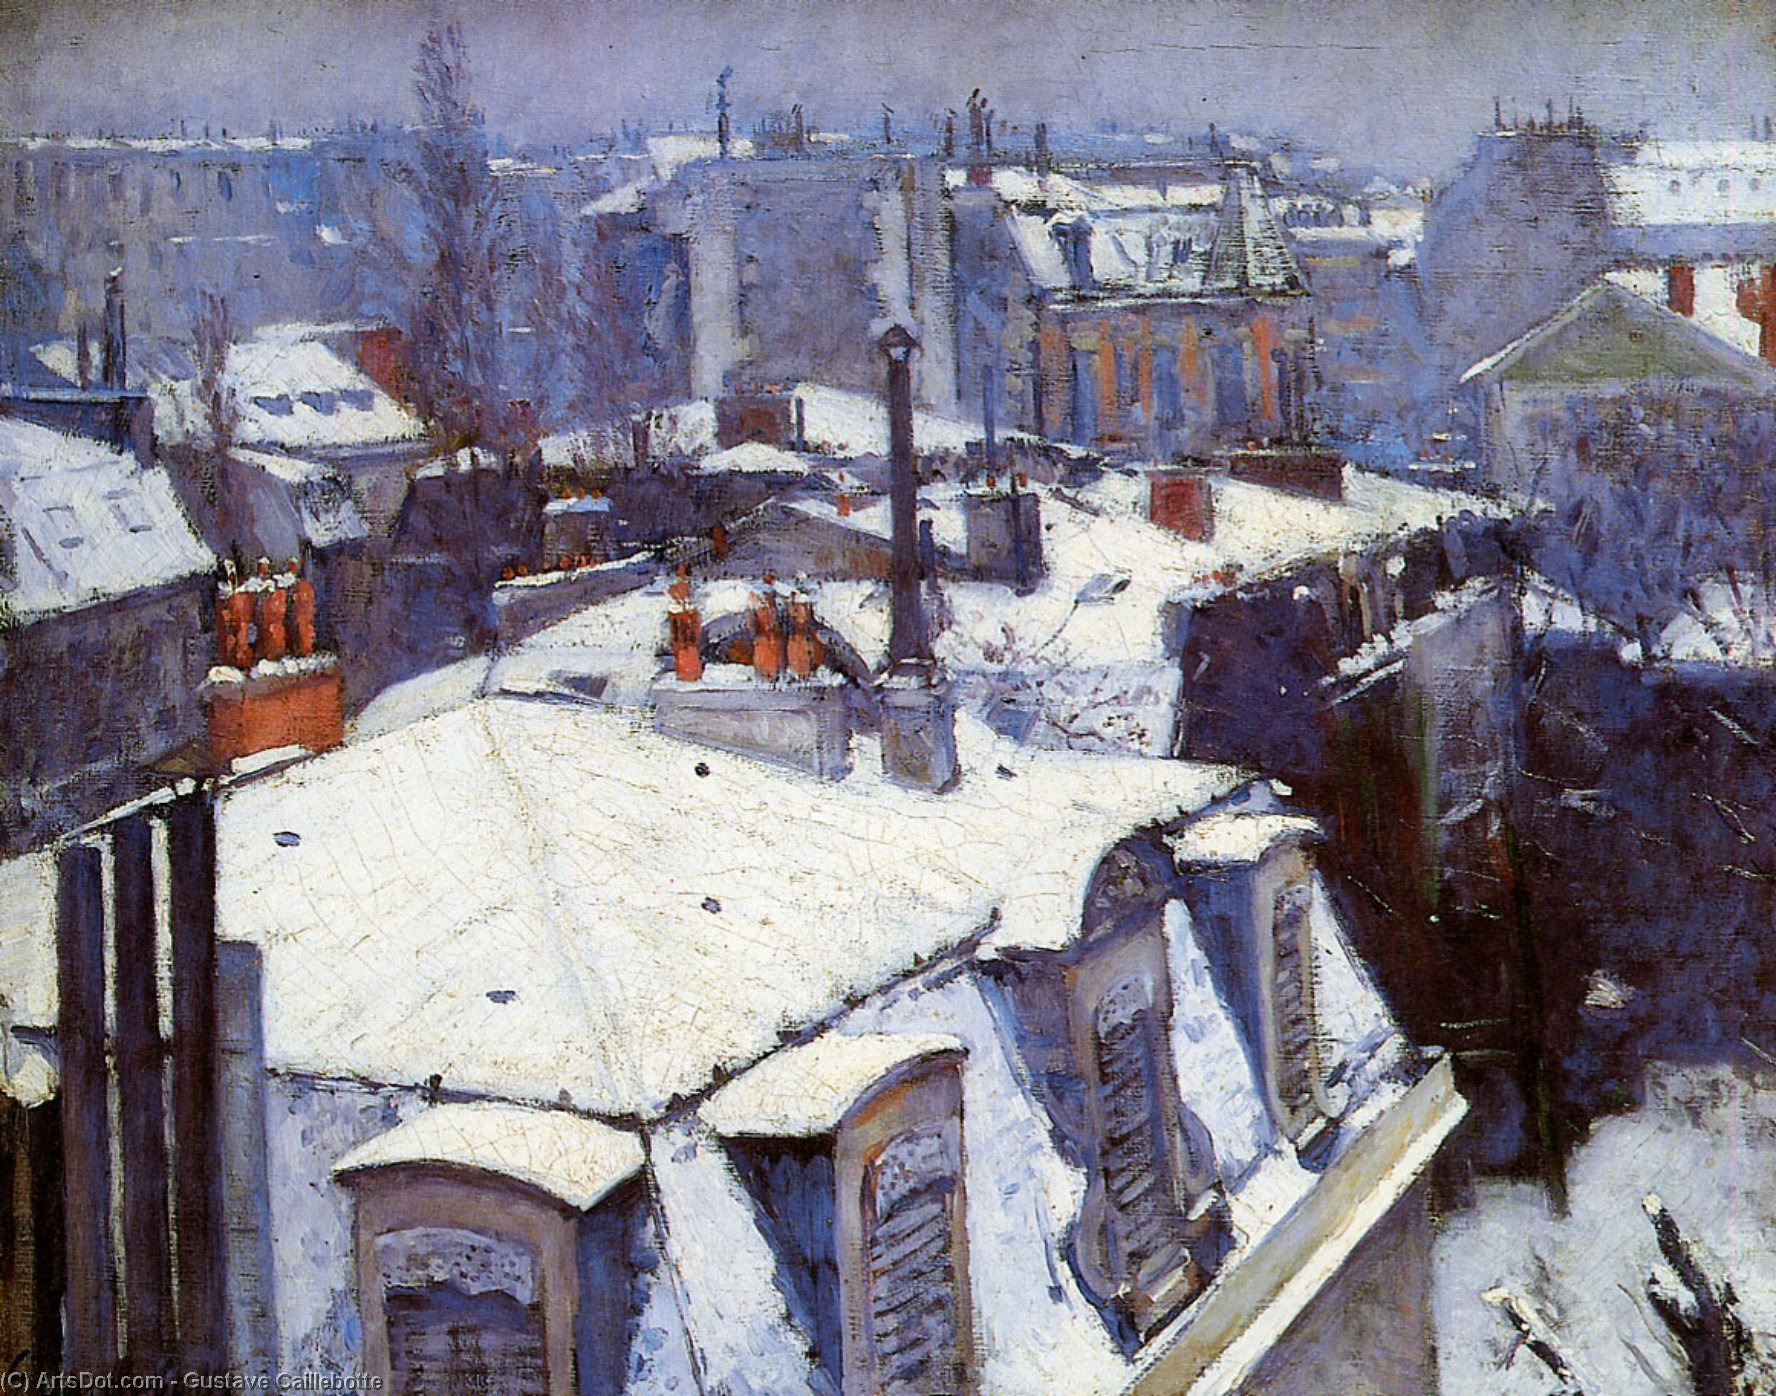 Wikioo.org - The Encyclopedia of Fine Arts - Painting, Artwork by Gustave Caillebotte - View of Roofs (Snow Effect) or Roofs under Snow